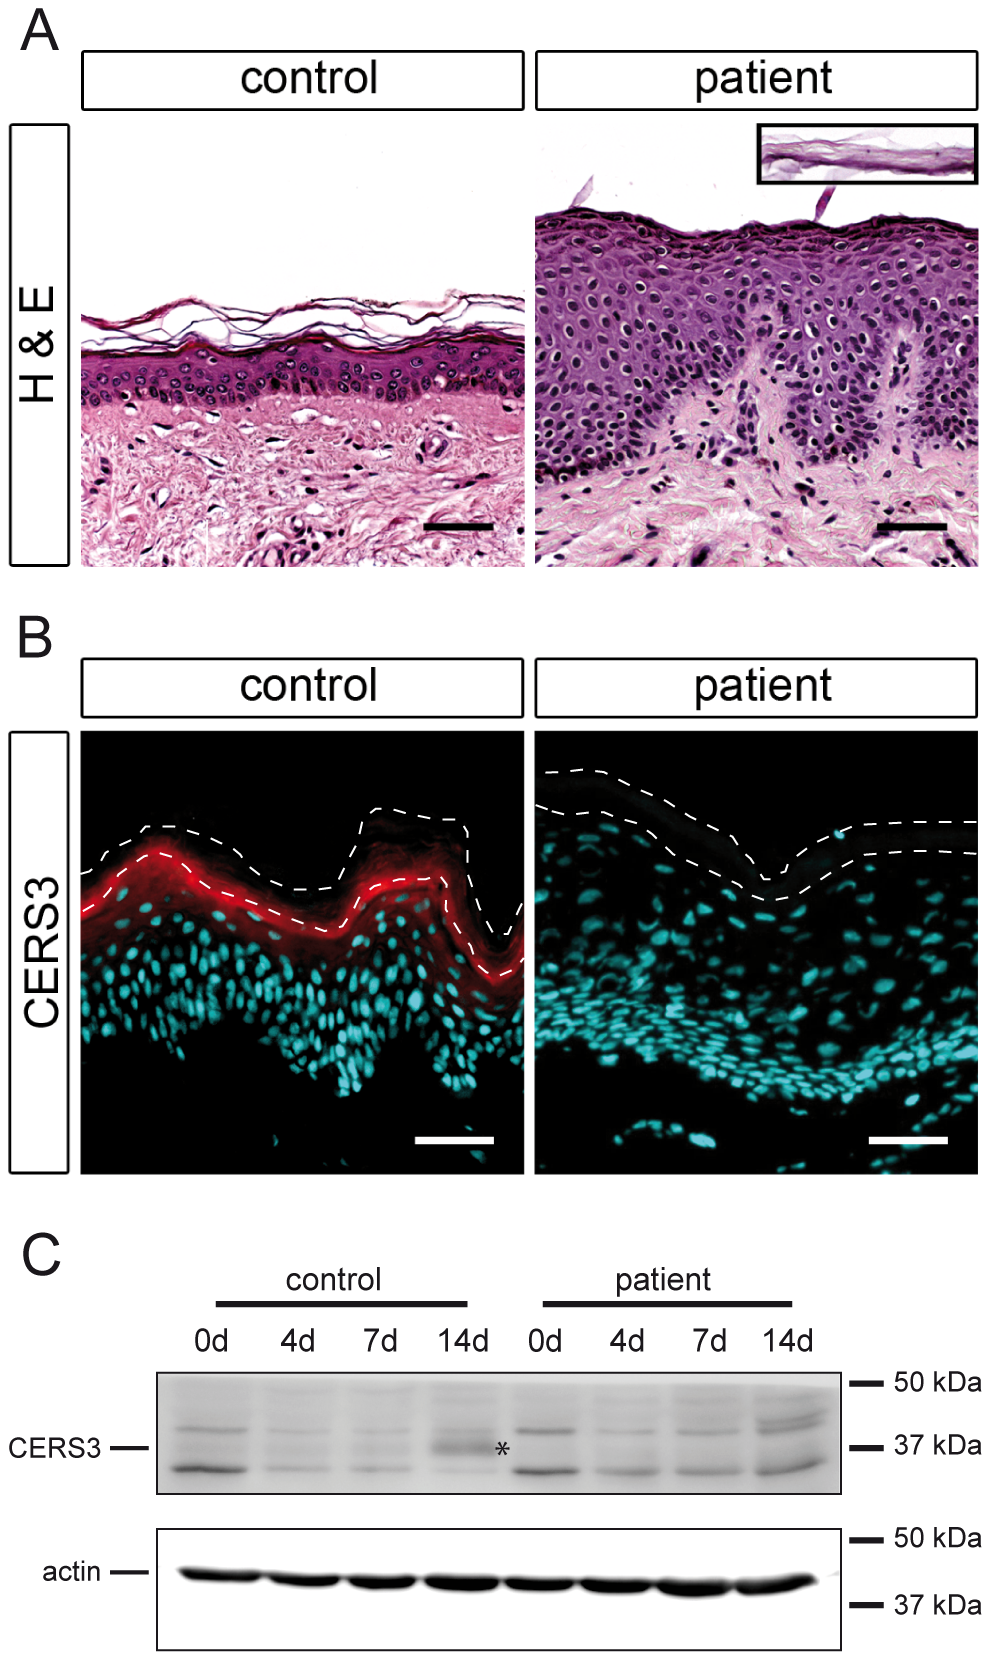 Histological analysis and CERS3 protein expression in skin biopsies and cultured keratinocytes from healthy controls and patient H.